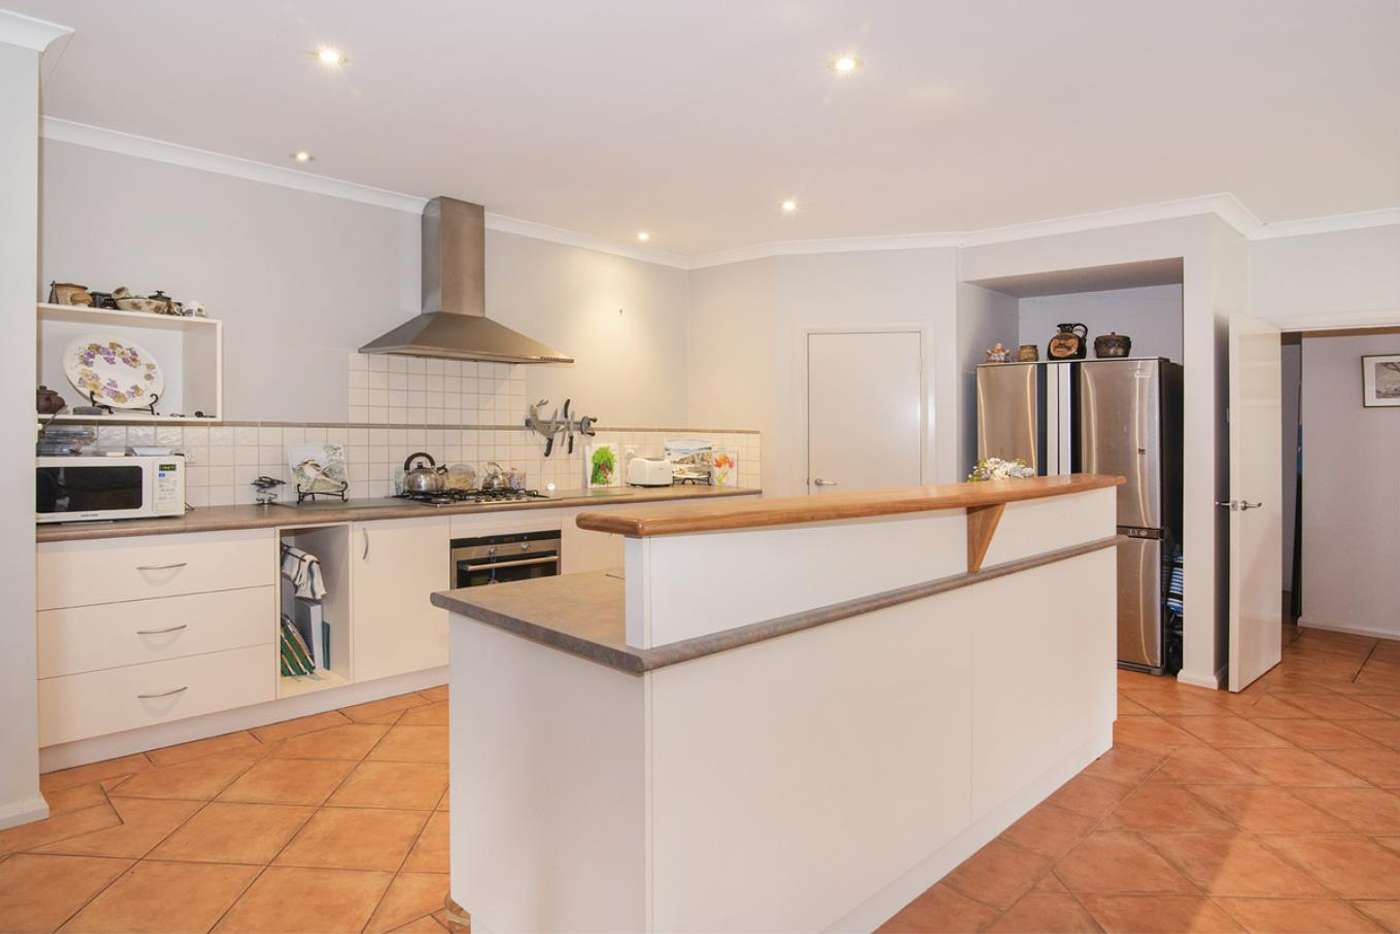 Main view of Homely house listing, 6 Hillside Avenue, Margaret River WA 6285